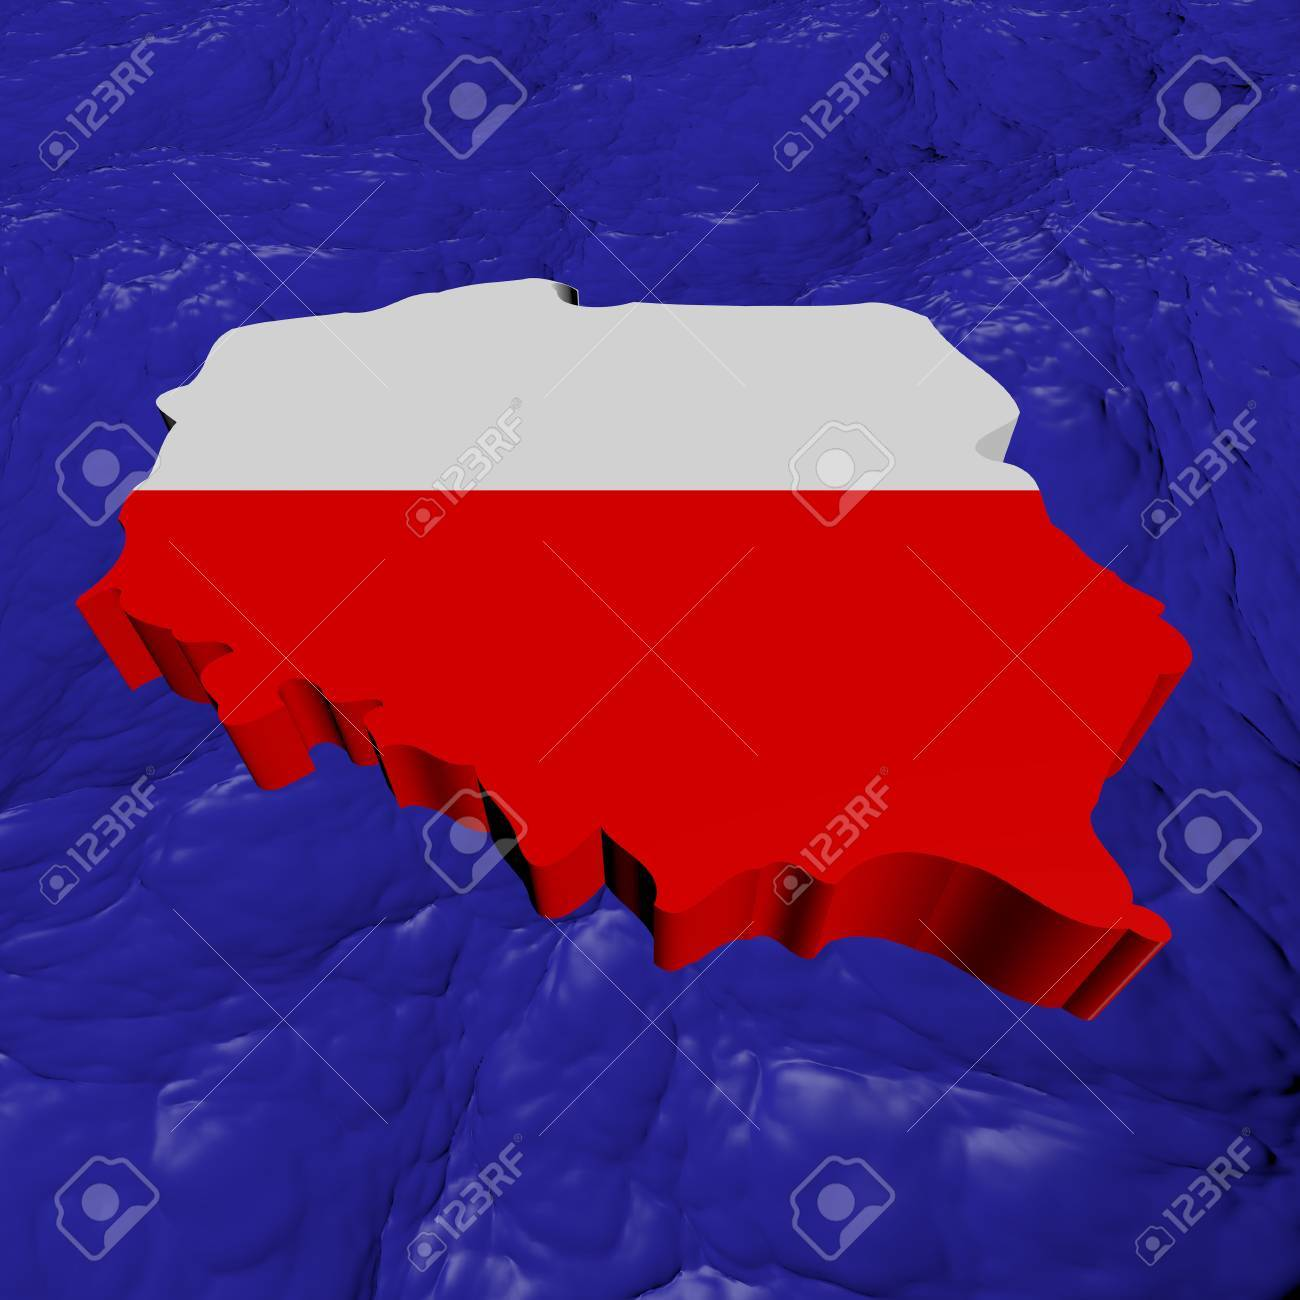 Poland Map Flag In Abstract Ocean Illustration Stock Photo, Picture ...